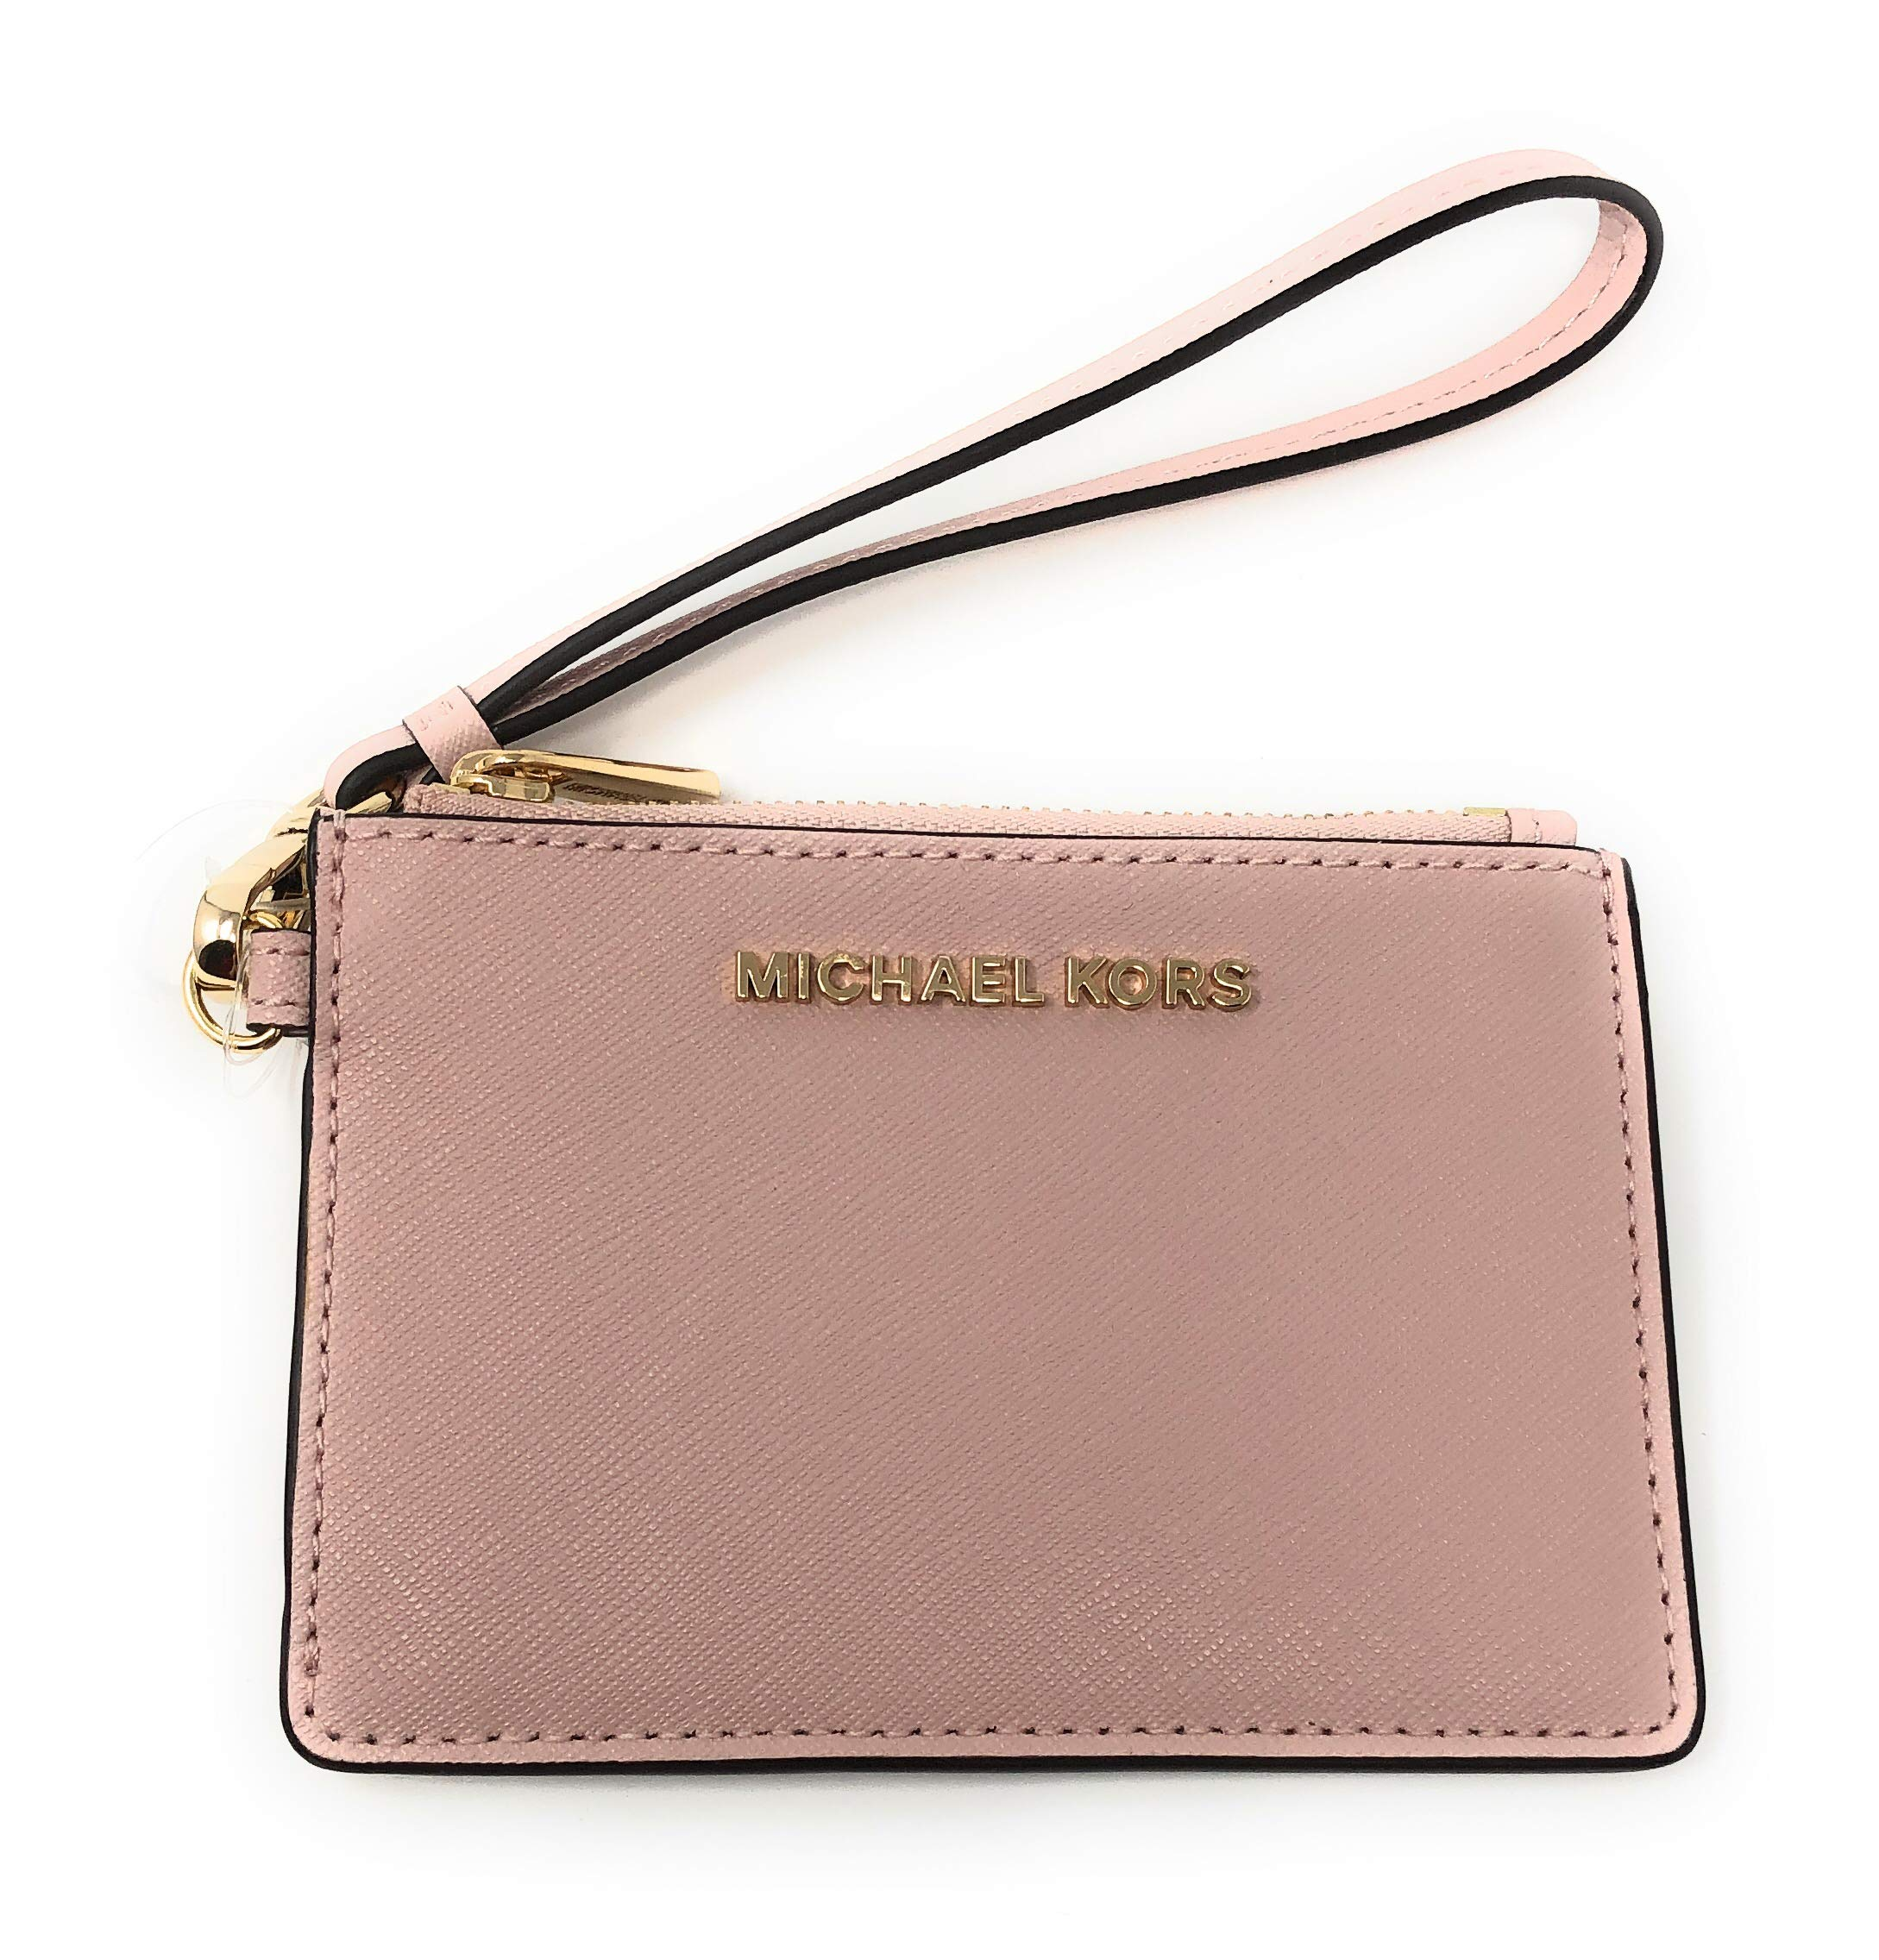 Michael Kors Jet Set Travel Top Zip Coin Pouch ID Card Case Wallet Wristlet (Blossom/Fawn)